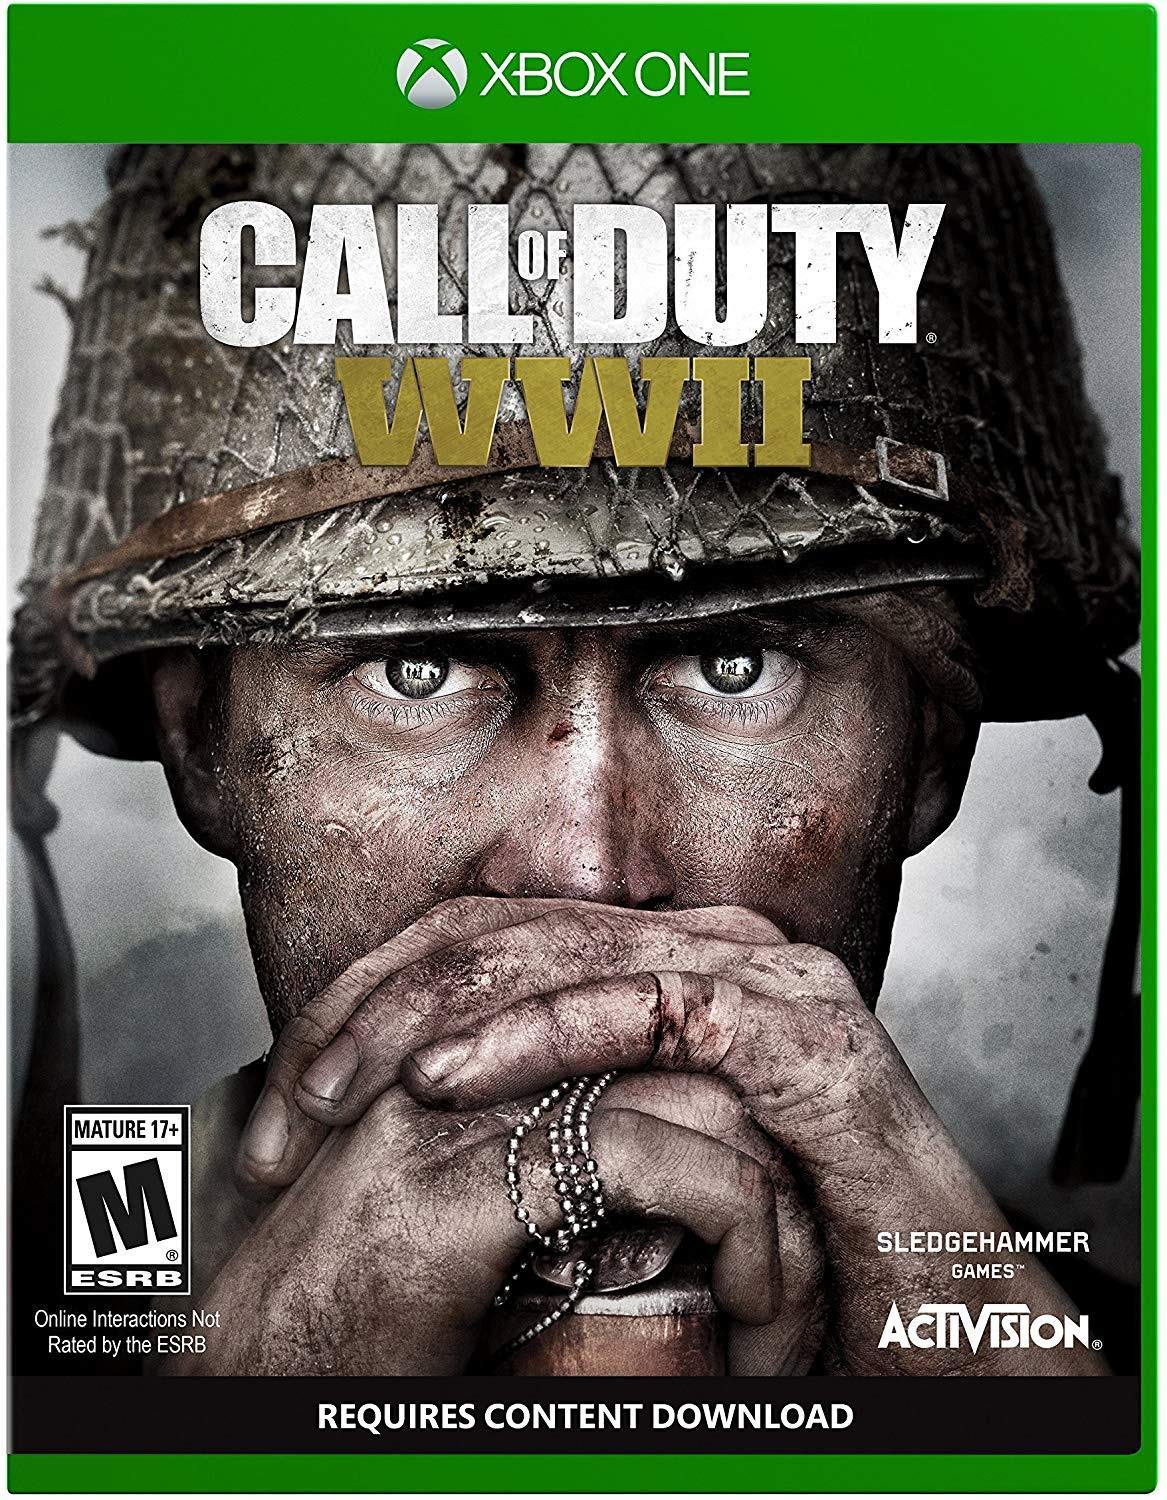 New world war 2 games xbox 360 the game feat 2 chainz free mp3